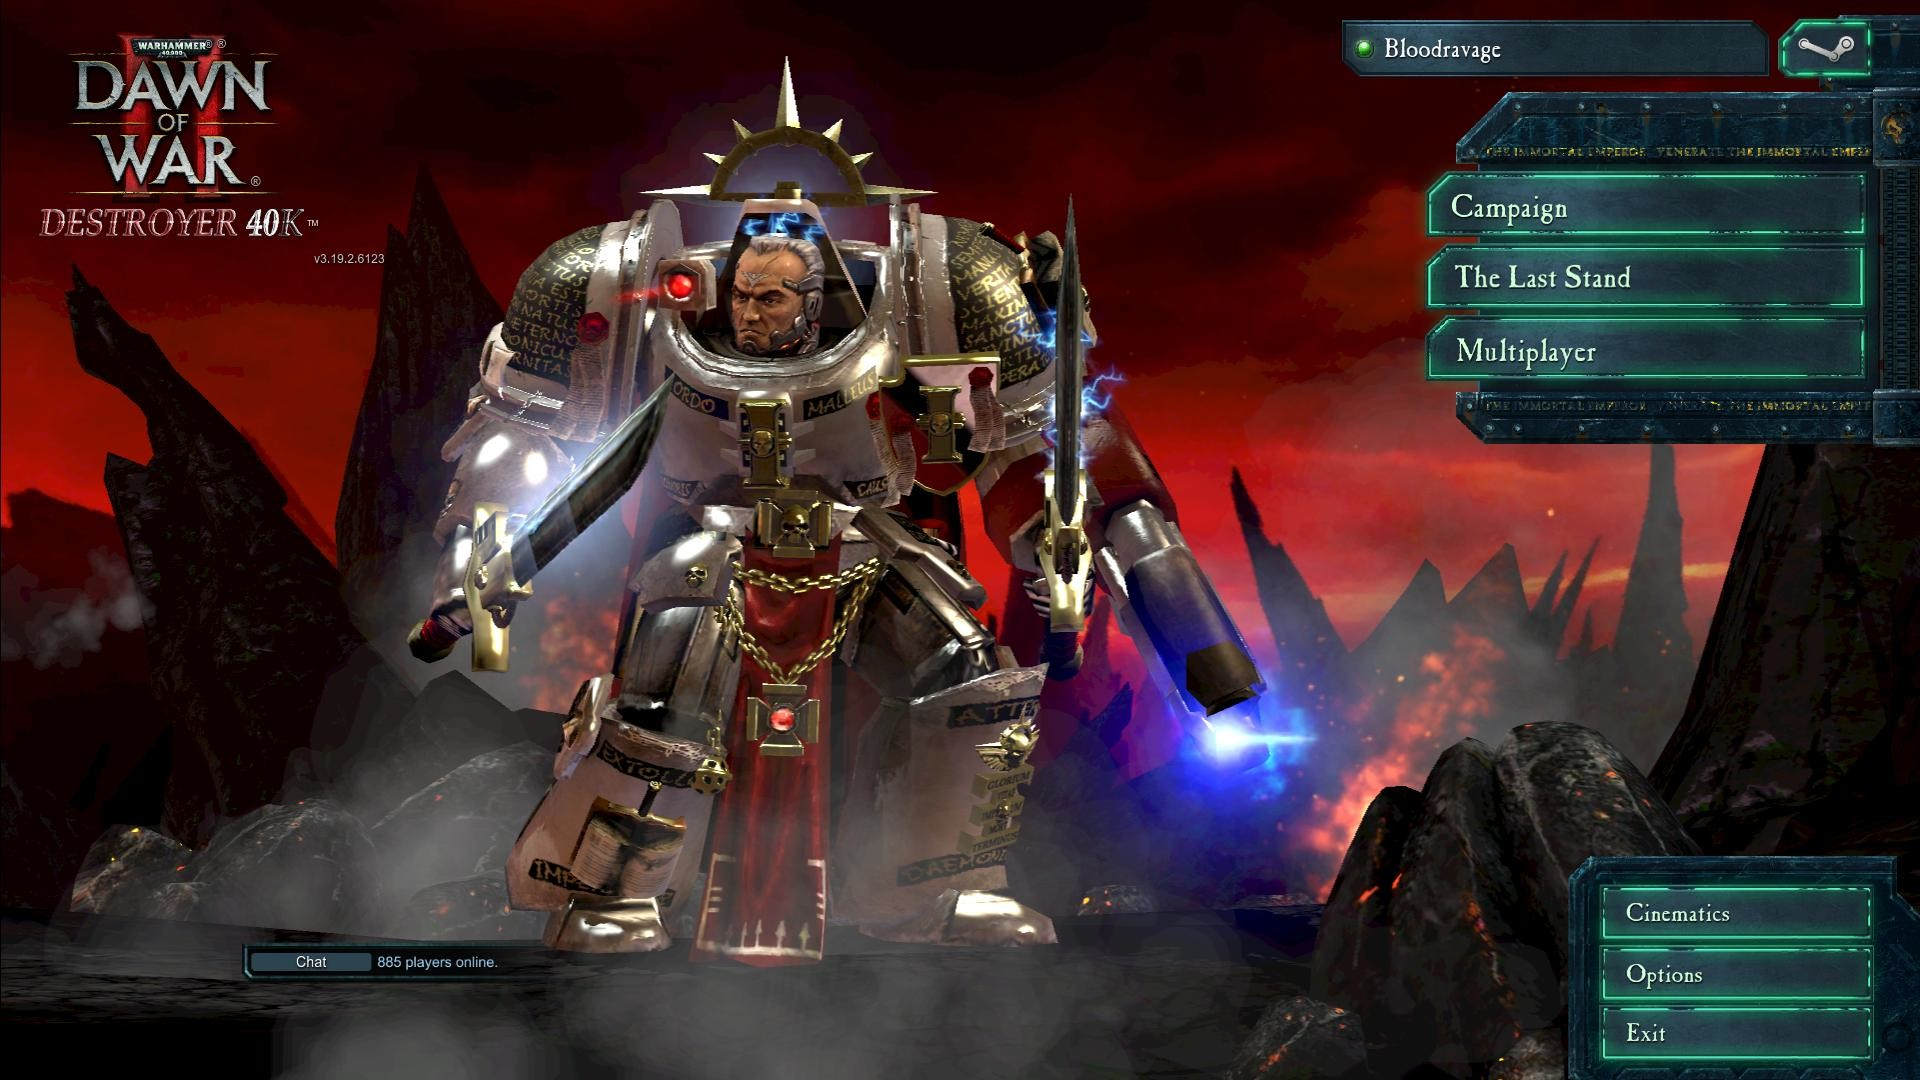 1920x1080 DoW2 Destroyer 40k Mod 2.0 AVAILABLE for Dawn of War II: Retribution - Mod  DB